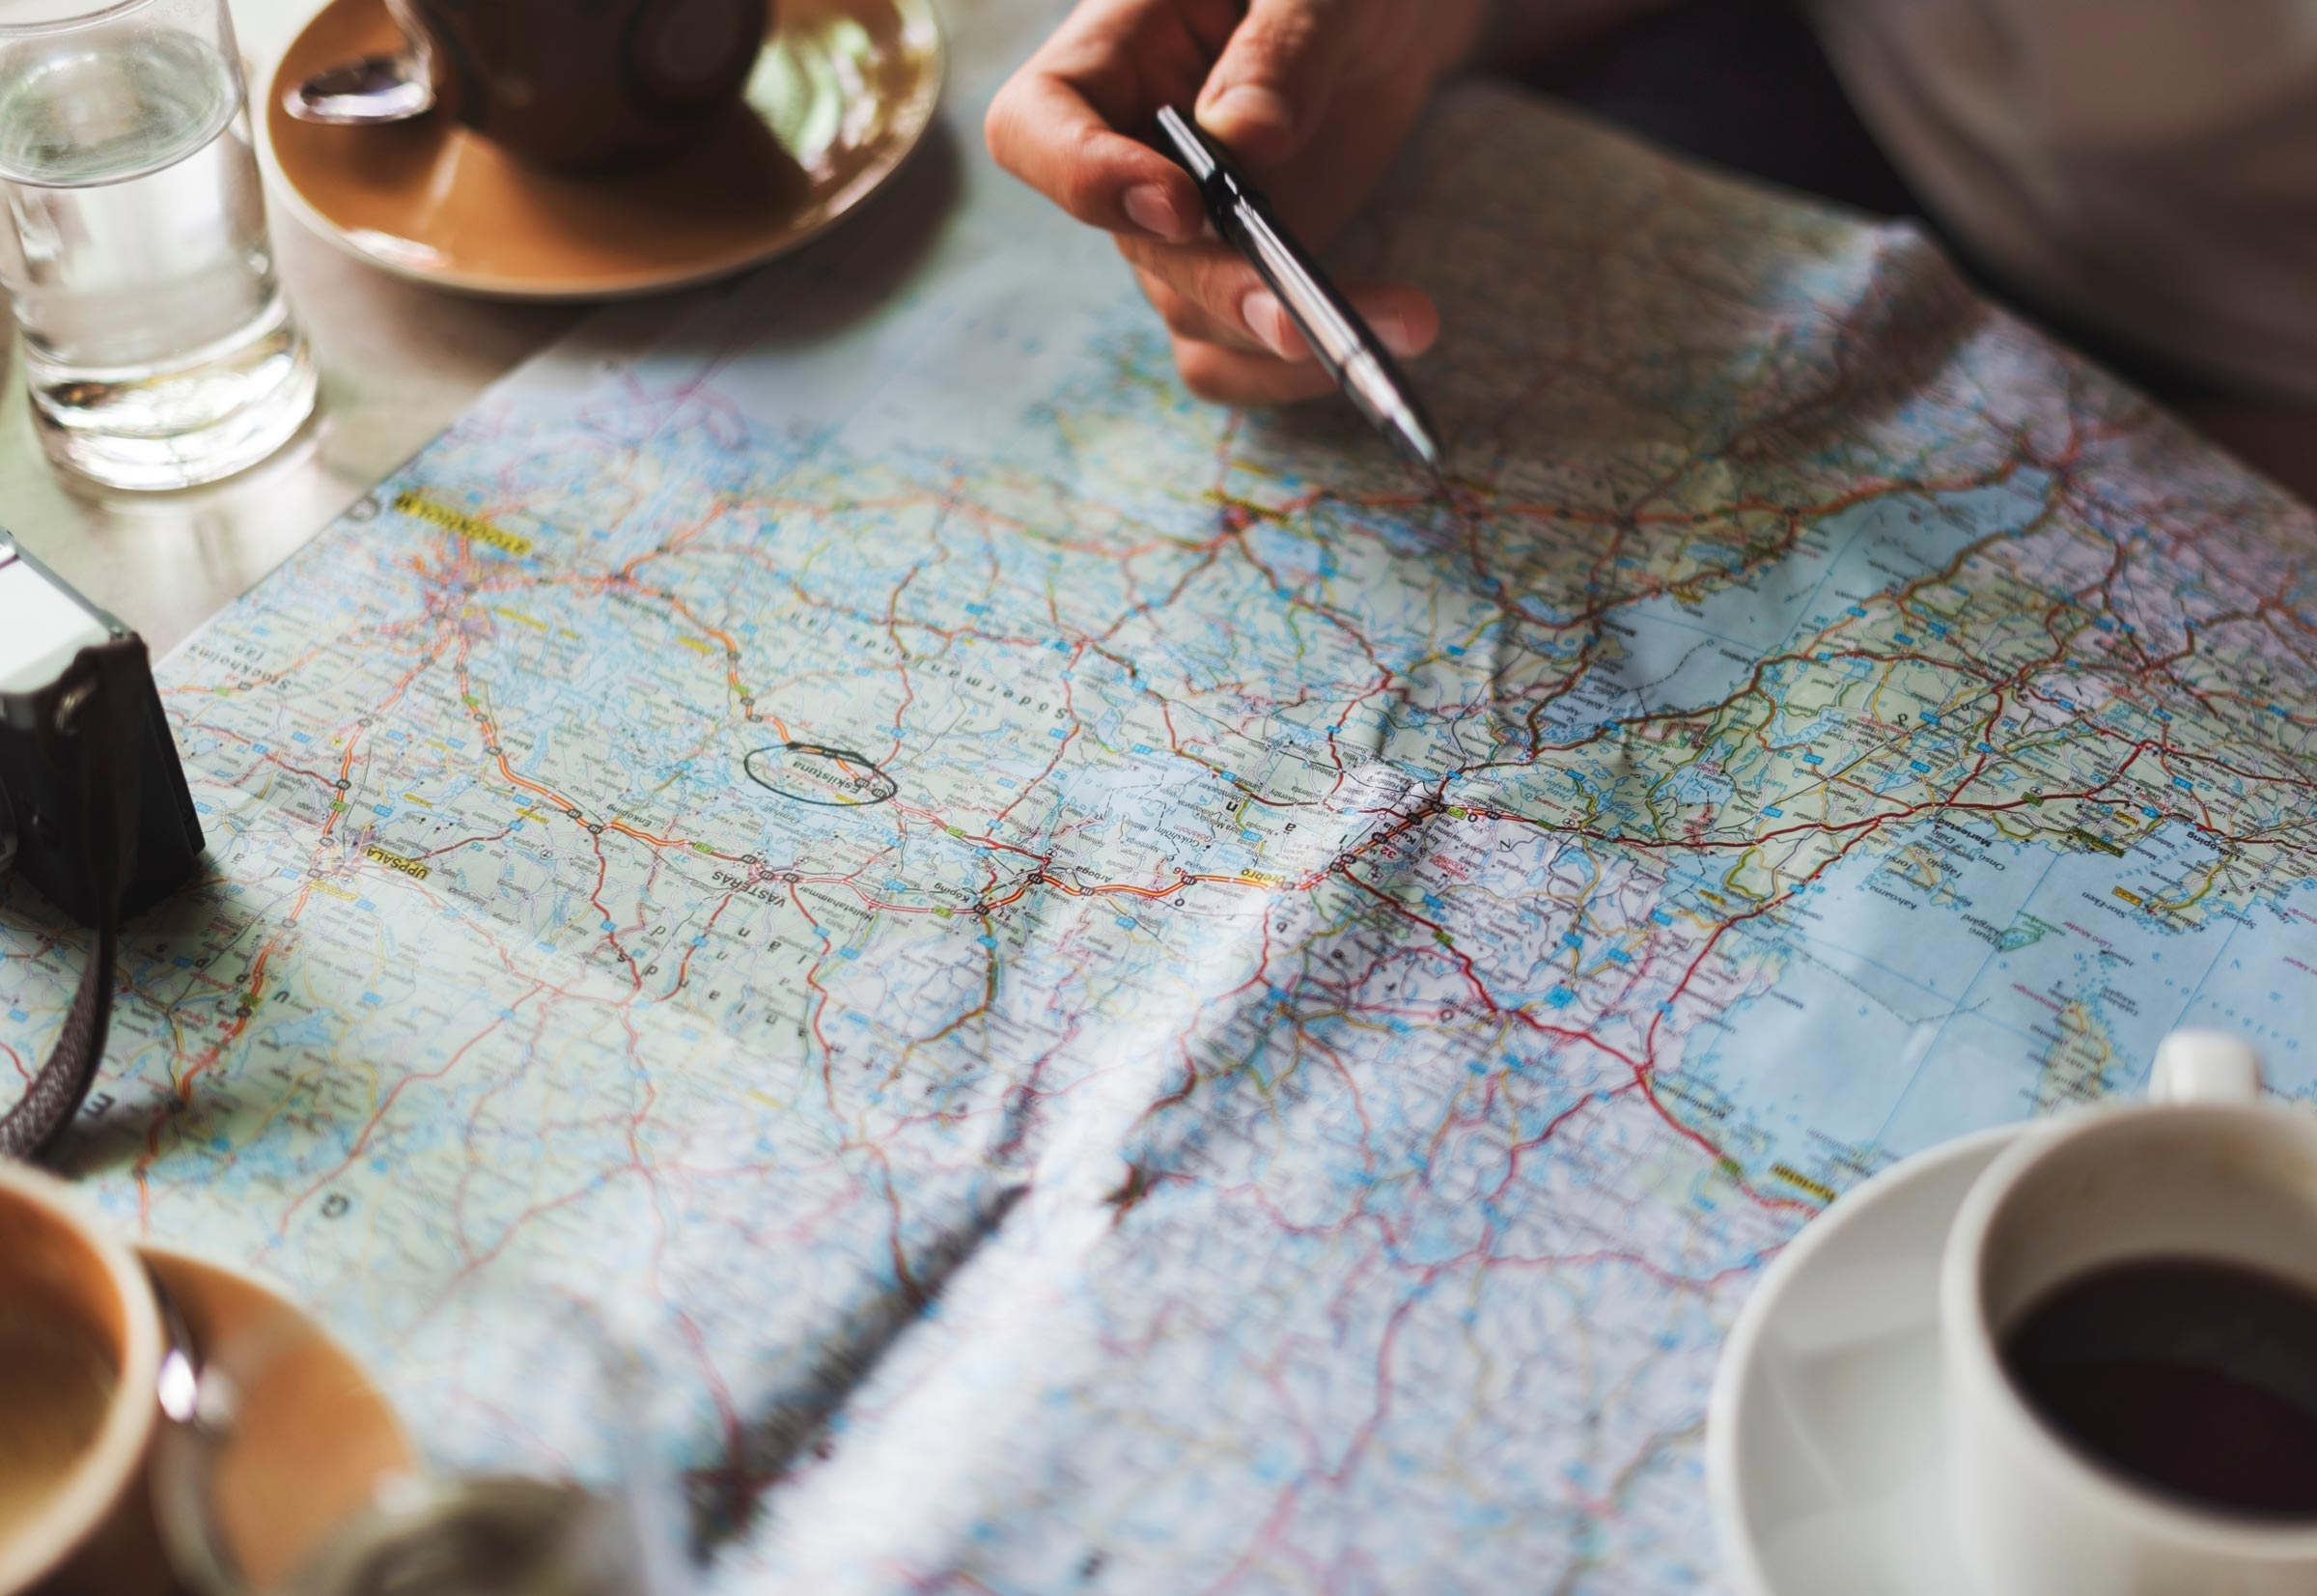 map on table with coffee cups